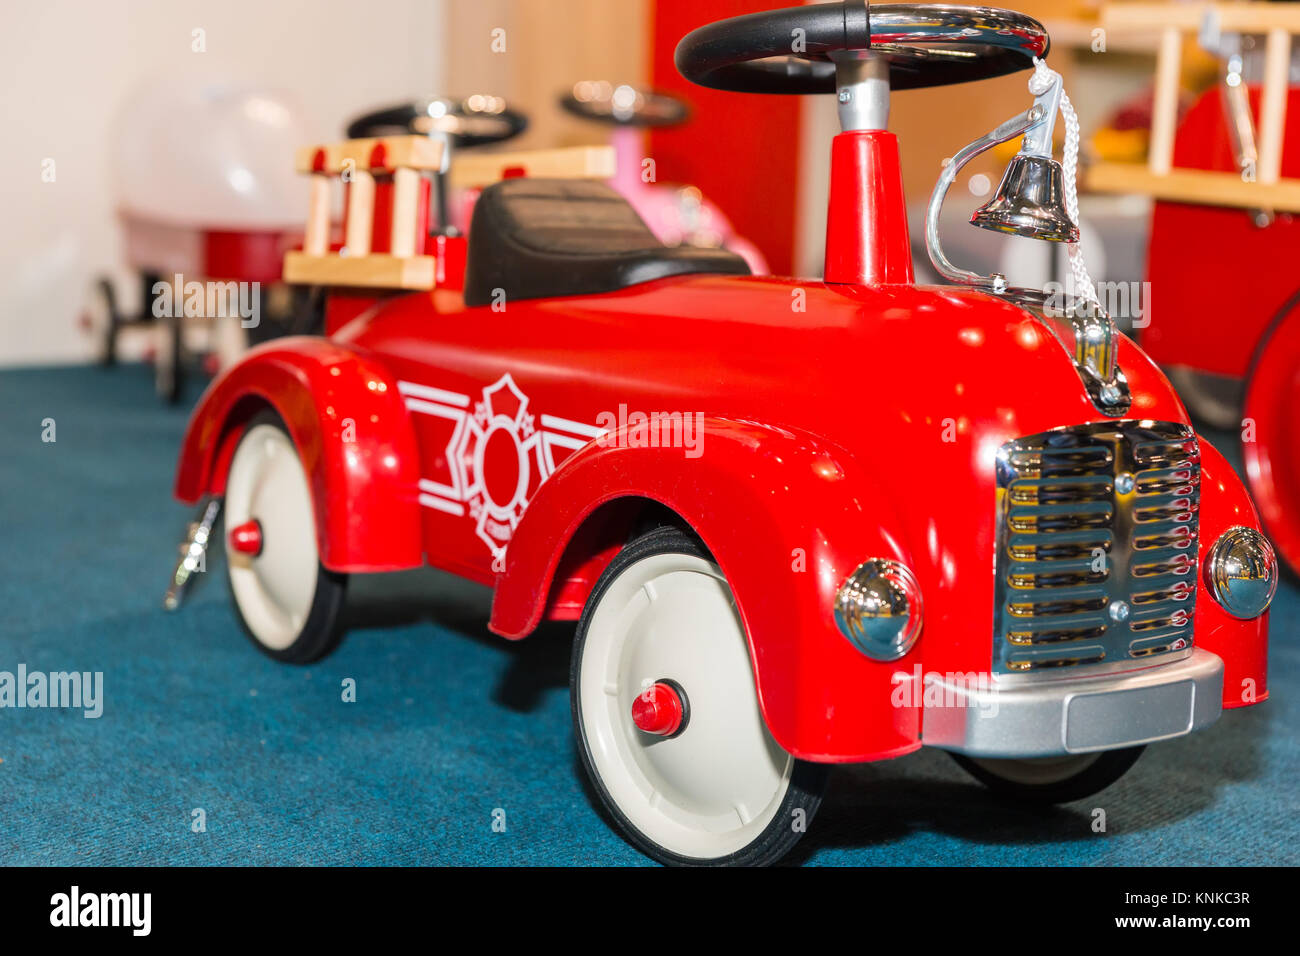 Close up of toy fire truck in a toy-shop Stock Photo